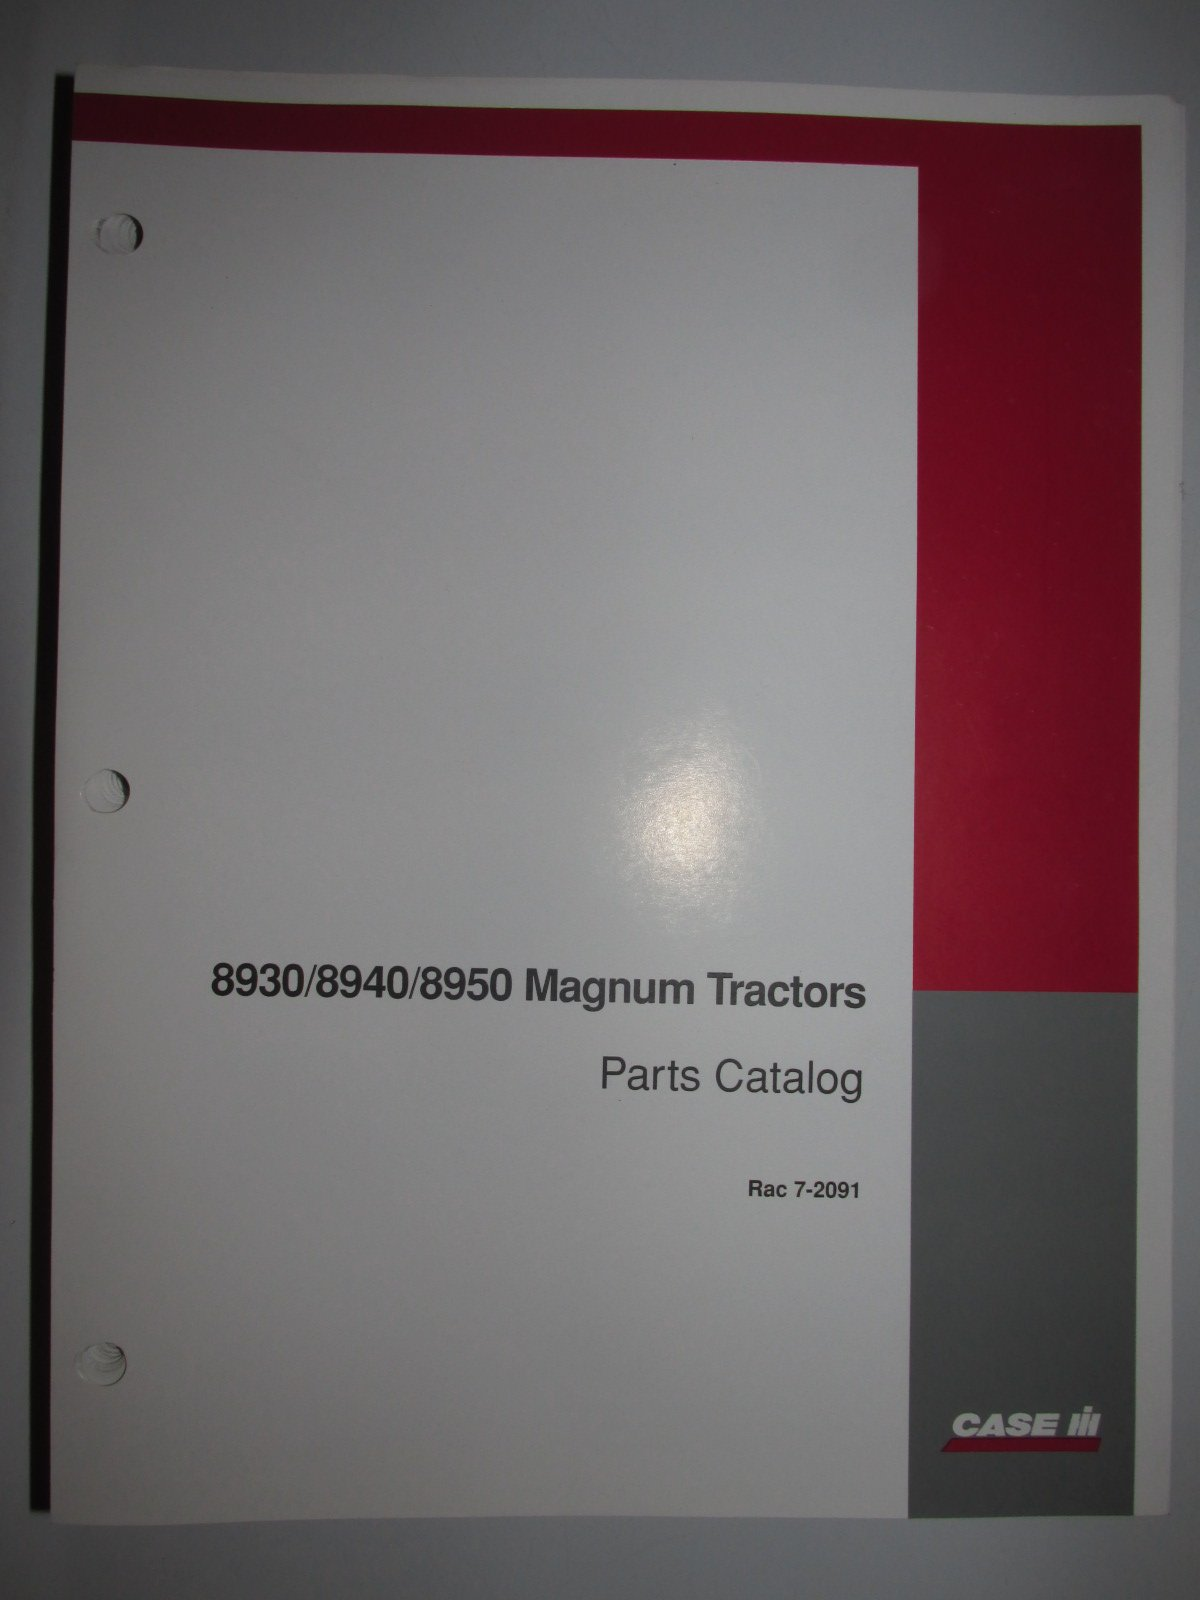 Case ih 8930 8940 8950 magnum tractor parts catalog book manual case ih 8930 8940 8950 magnum tractor parts catalog book manual original 7 2091 case case ih amazon books fandeluxe Image collections